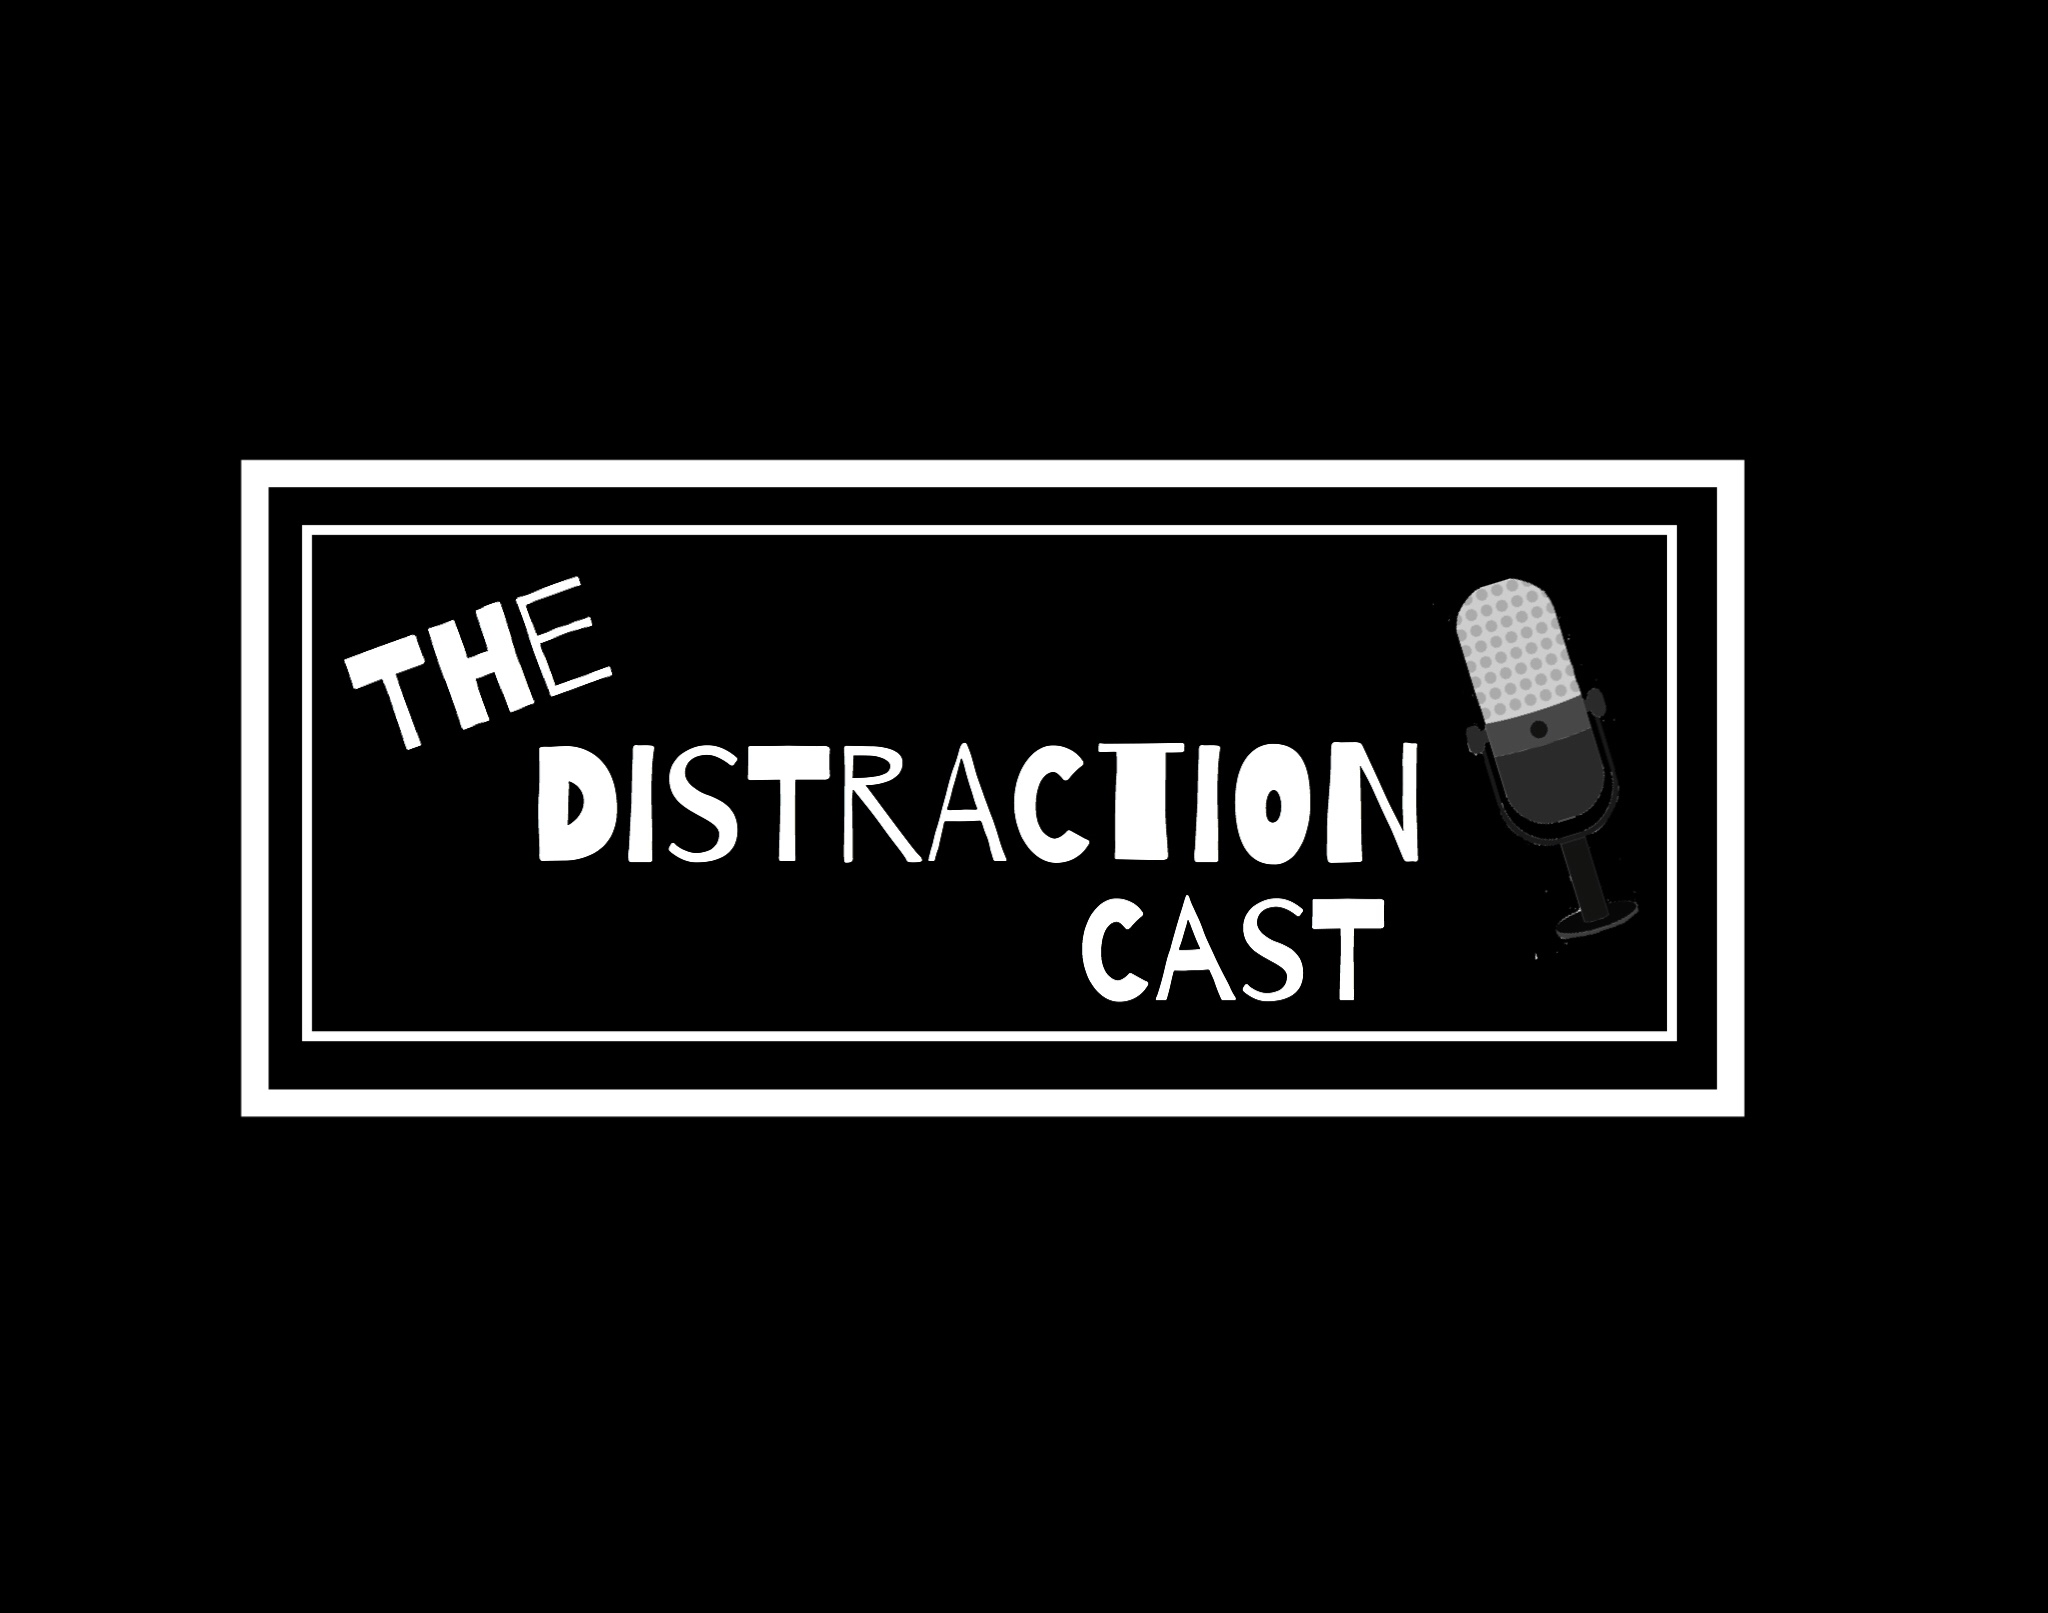 thedistractioncast